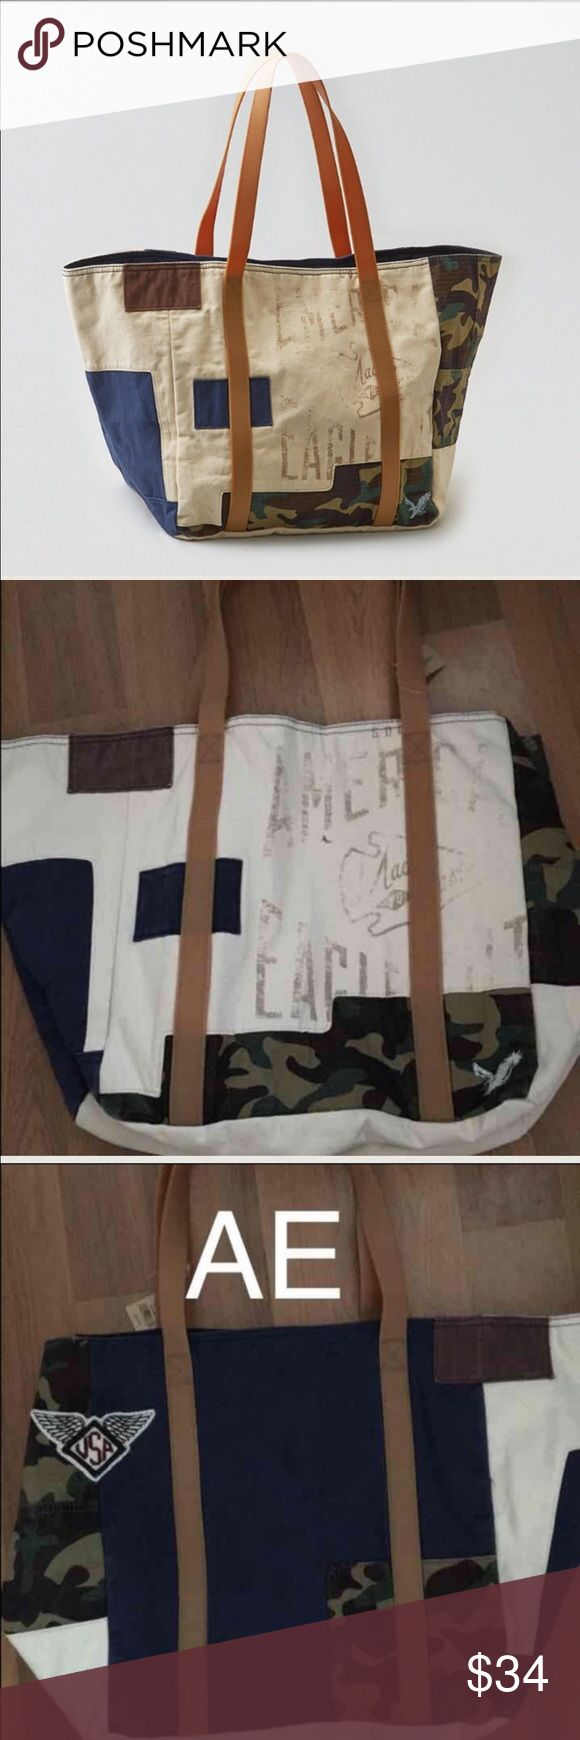 AE Camo & Logo Tote bag NWT. Camo/logo print. Pictures show front and back side. Has zipper pocket. Super spacious. Handles have a rubbery type of feel. Would make a great beach, travel bag, or diaper bag!! American Eagle Outfitters Bags Totes